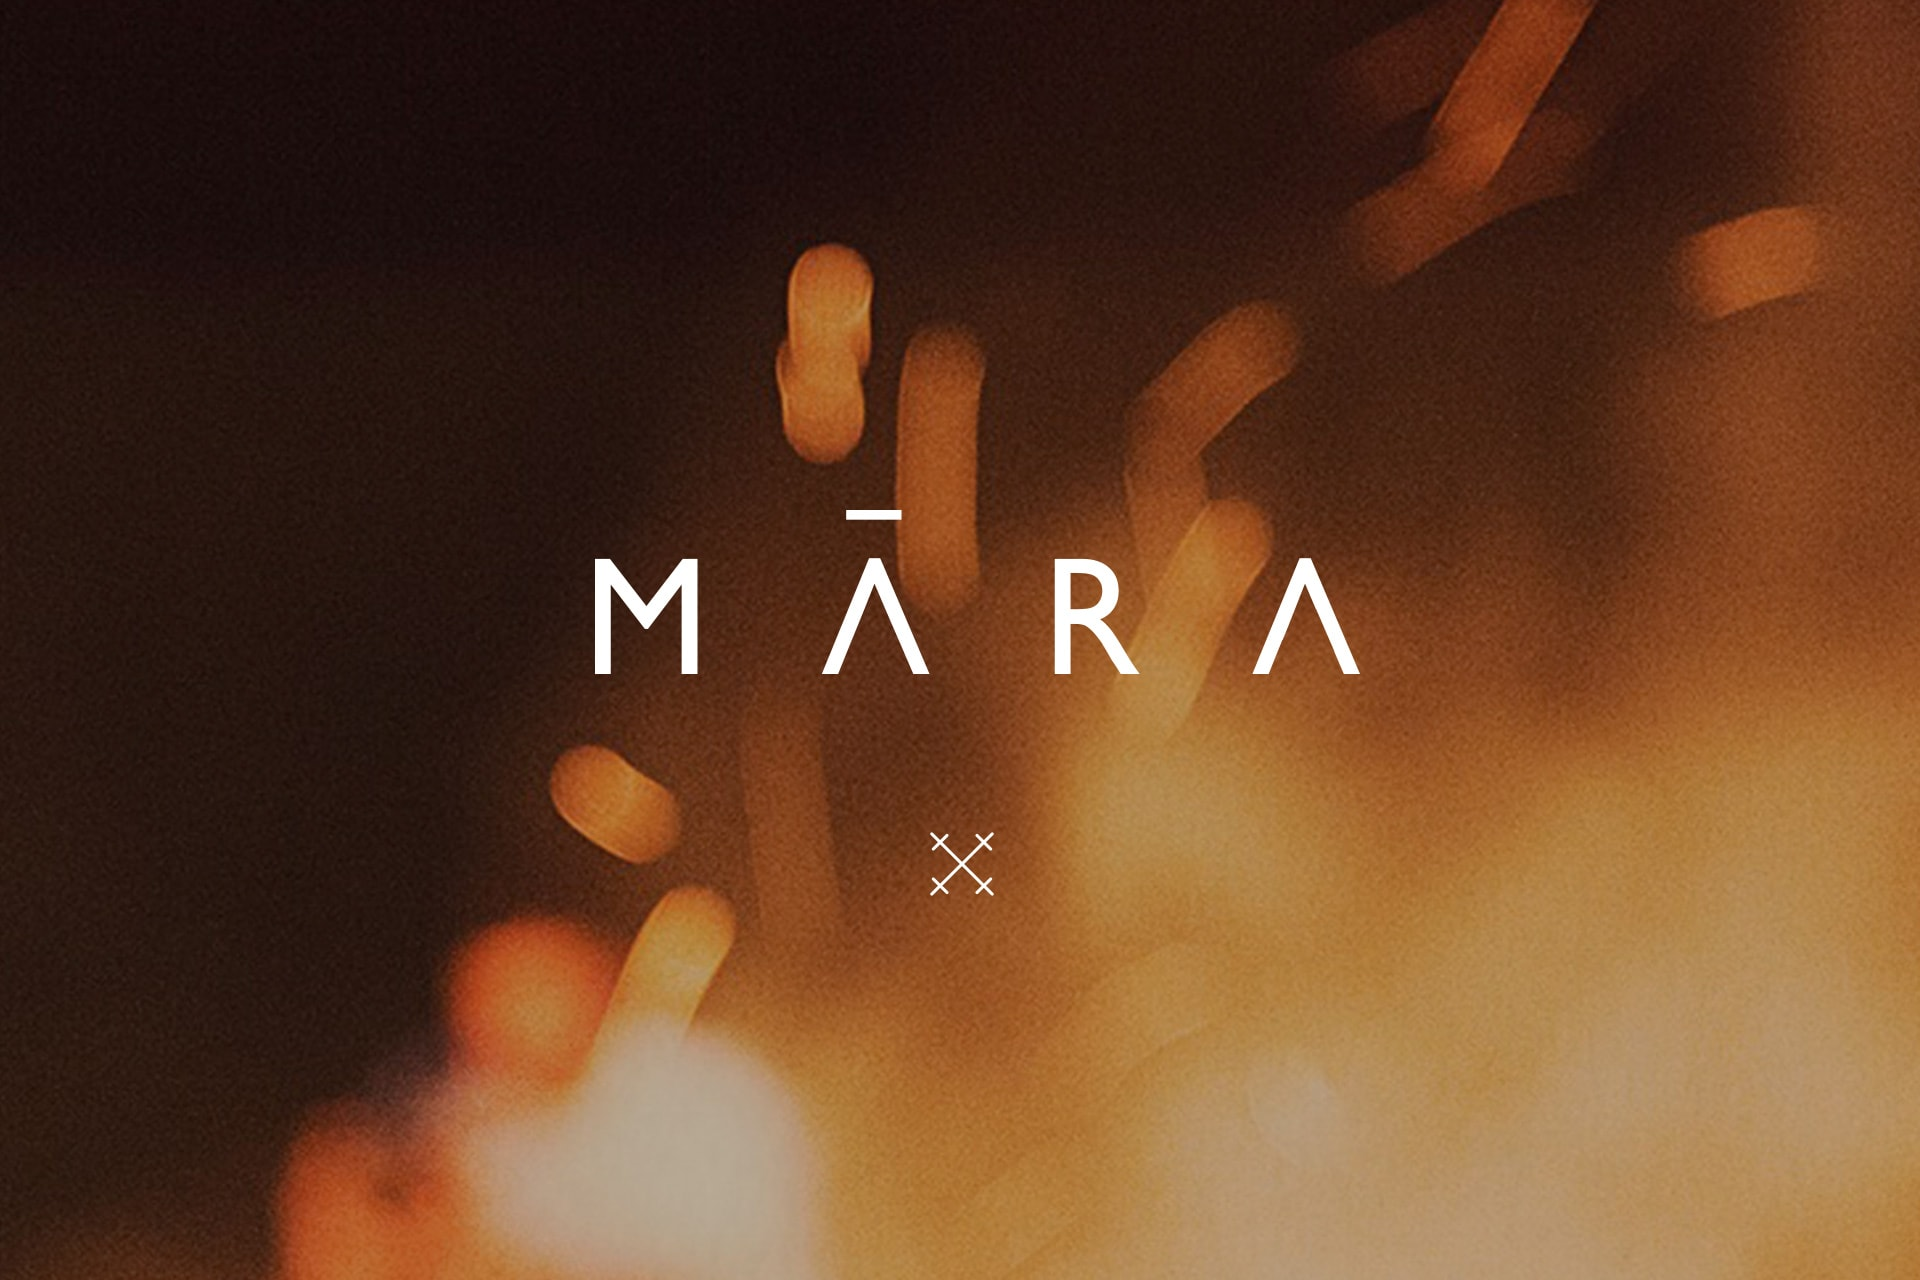 Photo of ambient sparks with Mara logo